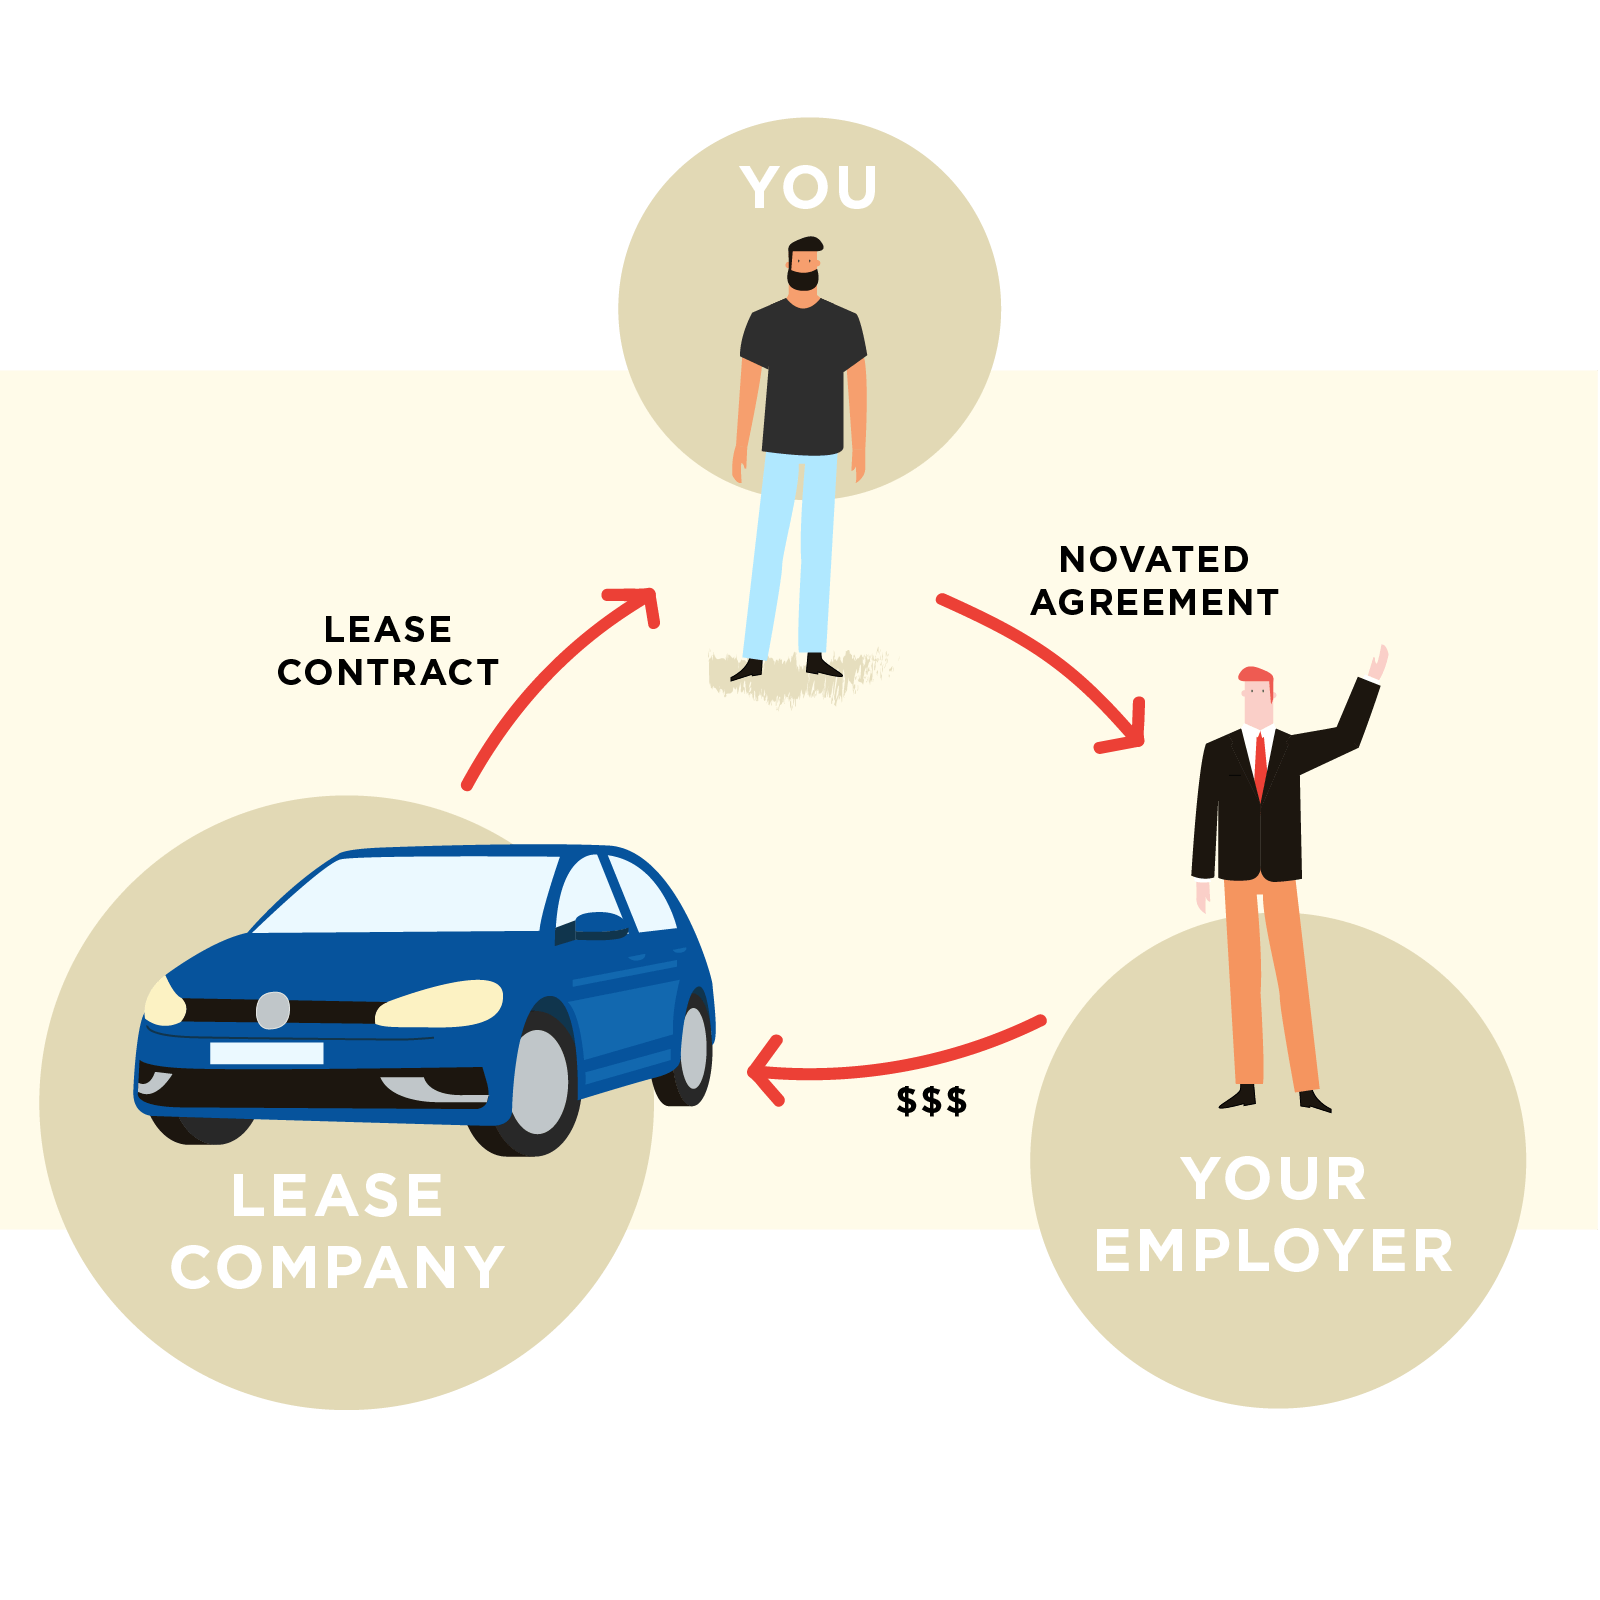 Novated lease - 3-way-agreement